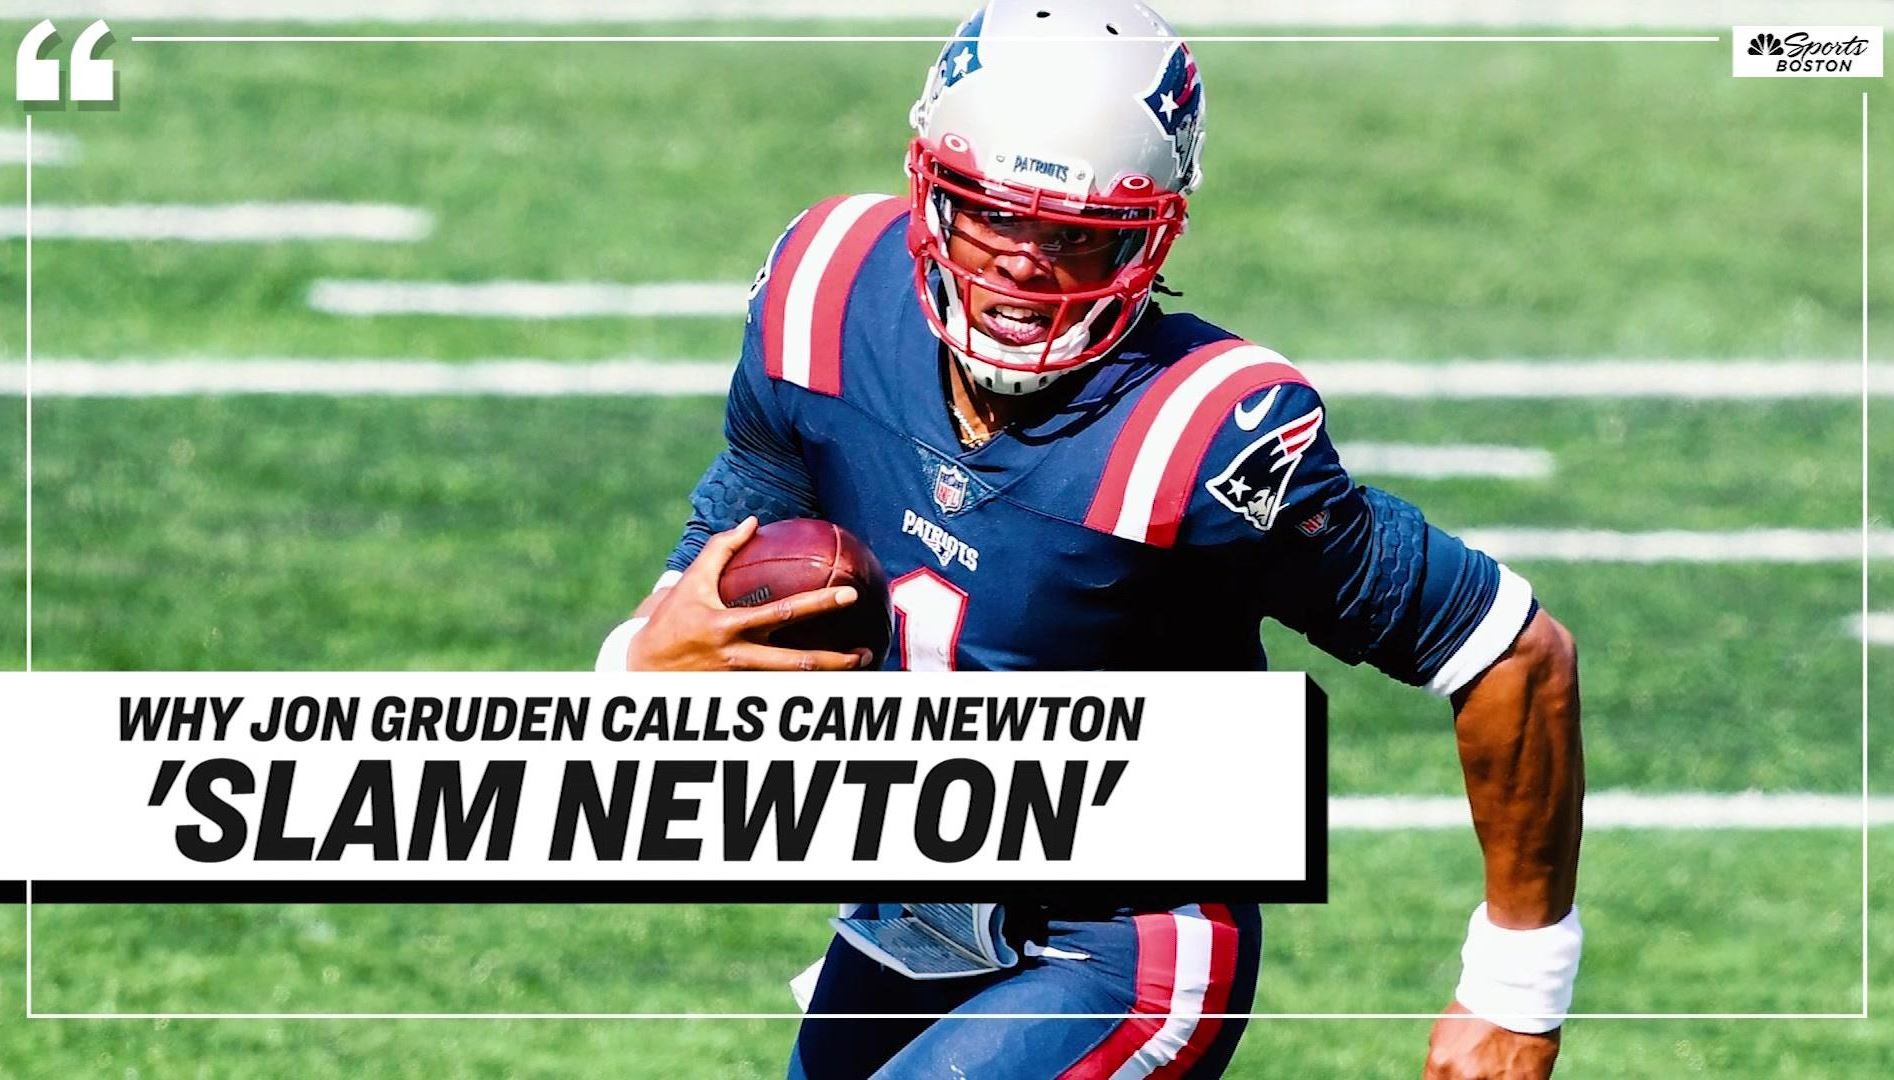 Cam Newton S Sideline Interaction With N Keal Harry Is Prime Meme Material Nbc Boston